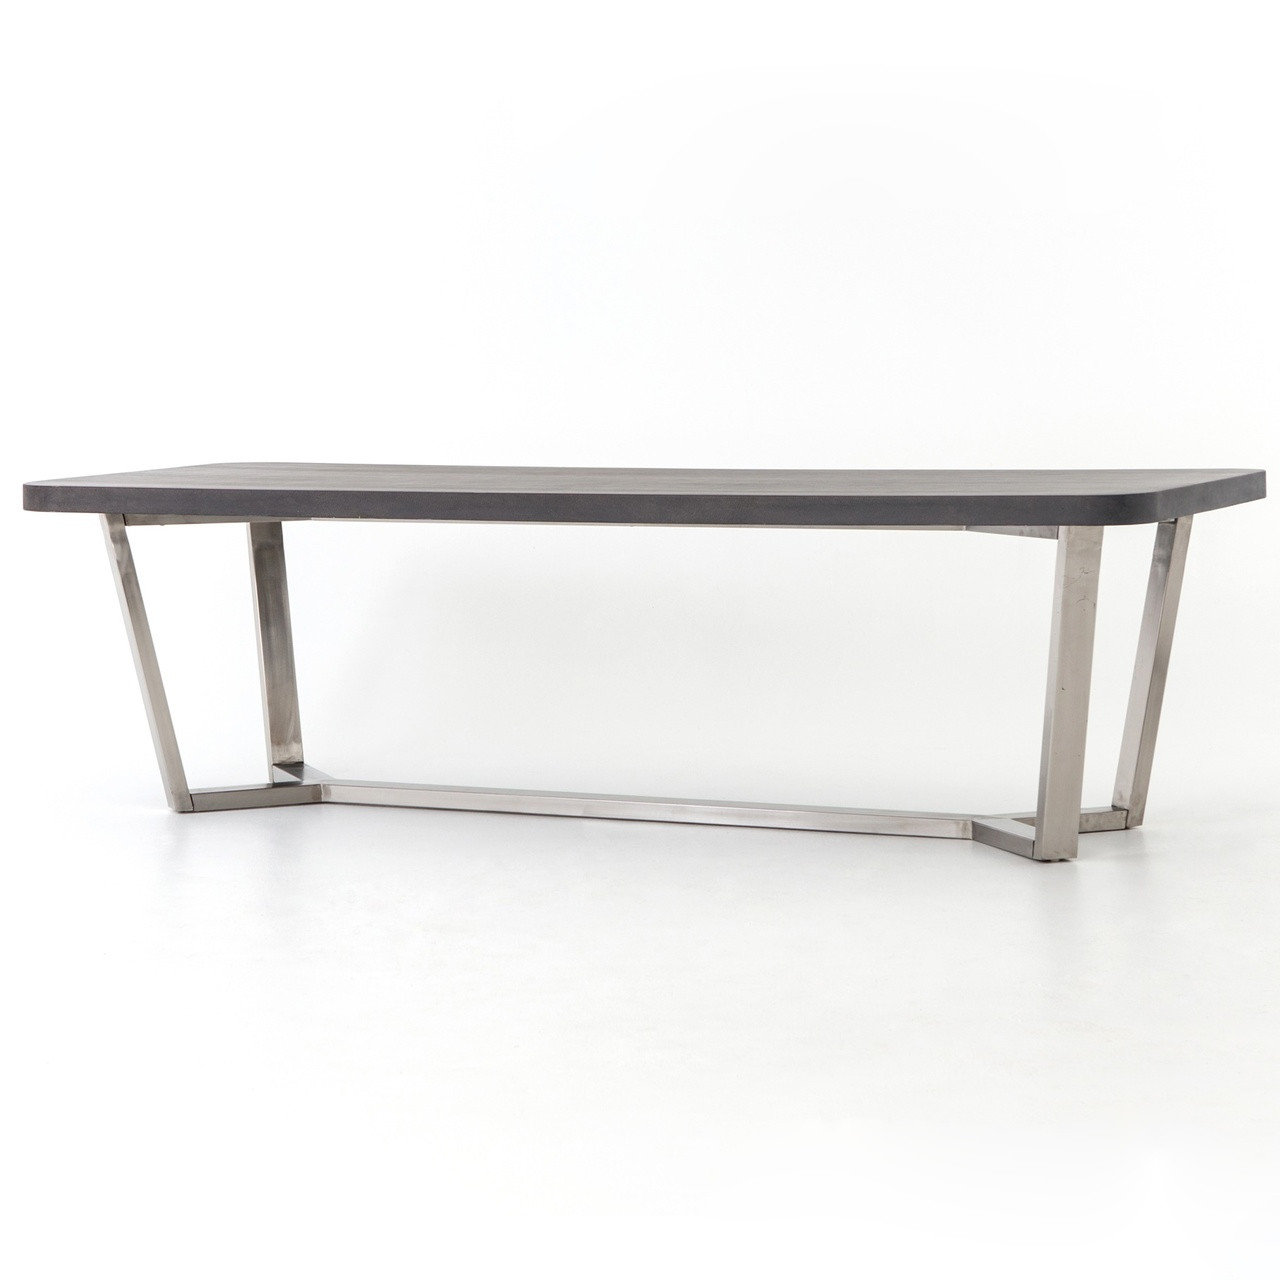 Ashton Lavastone Top Stainless Steel Legs Dining Table  Zin Home